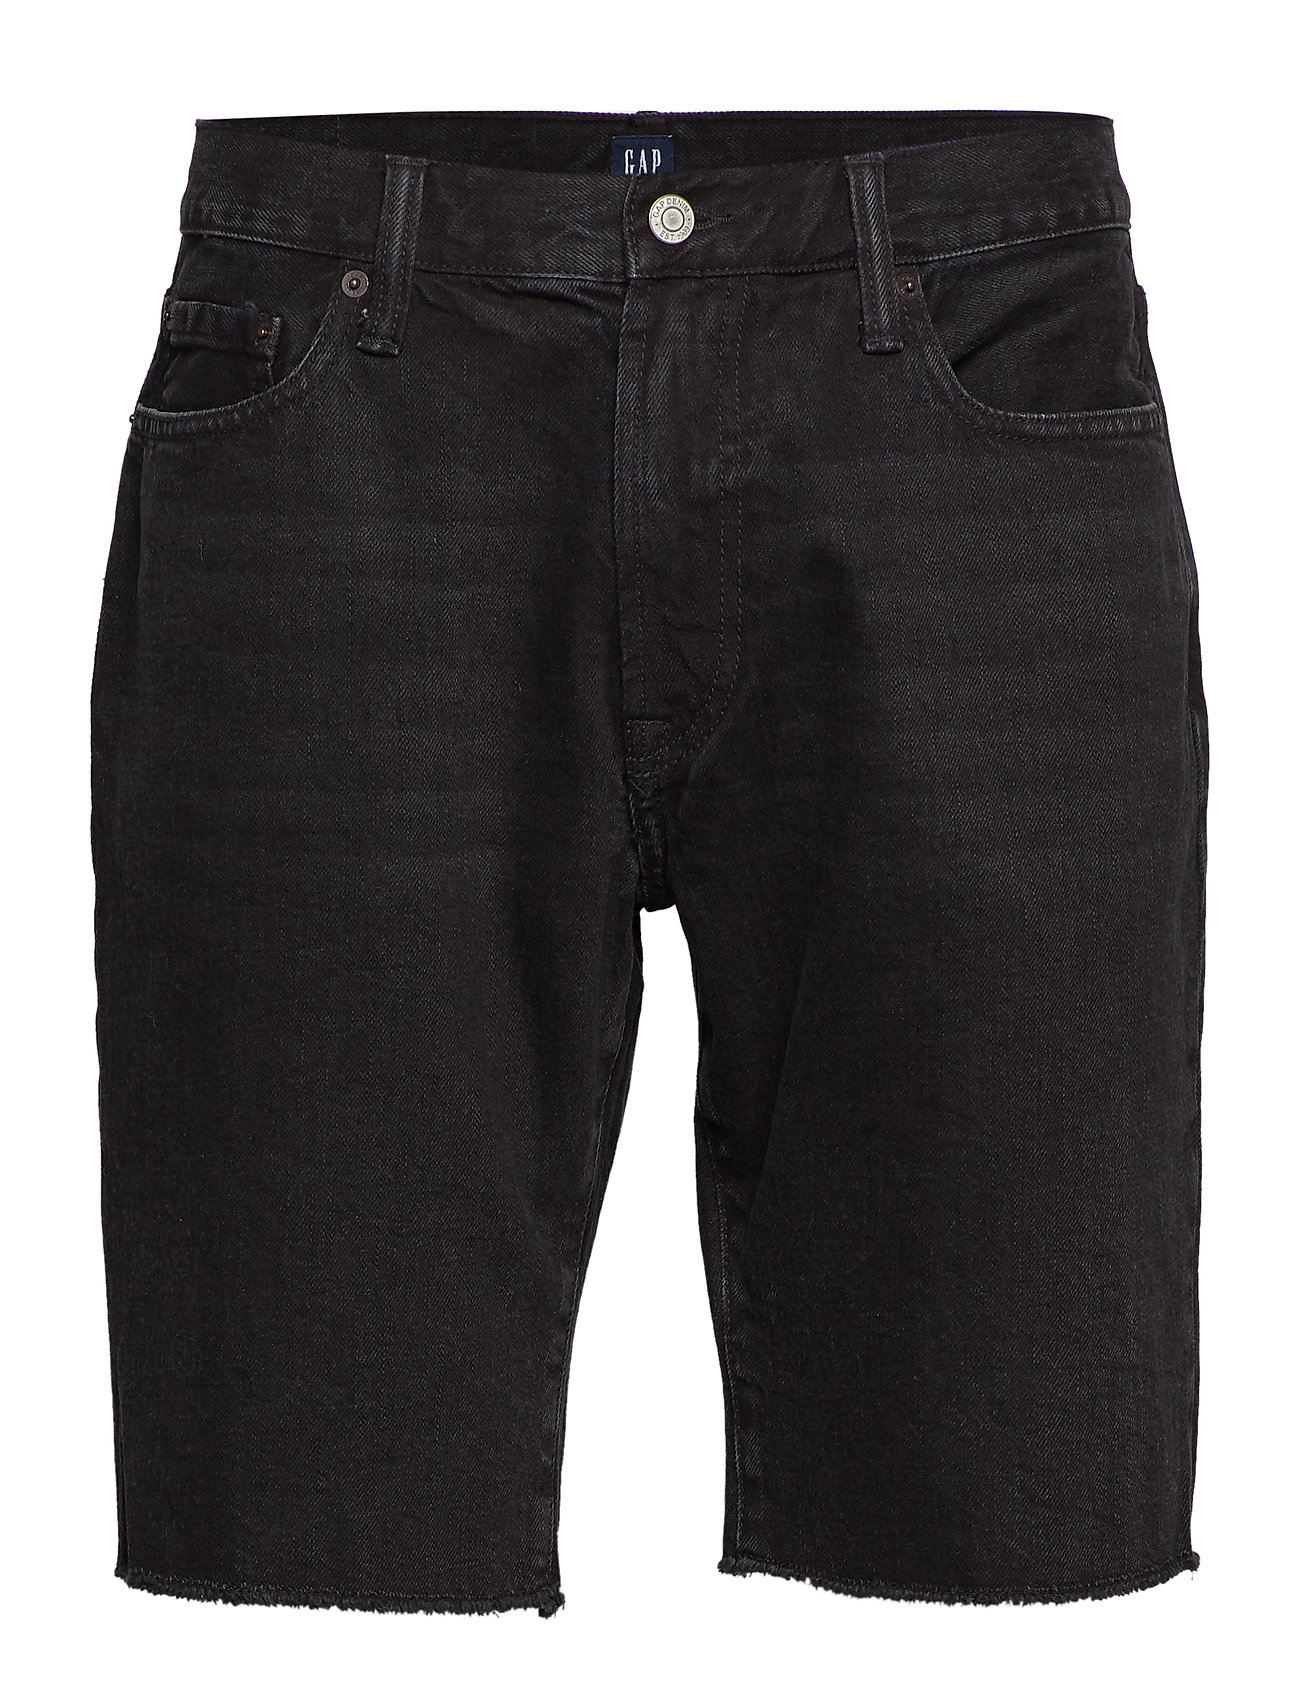 "GAP 10"" Slim Denim Shorts with Raw Hem - BLACK WASH"